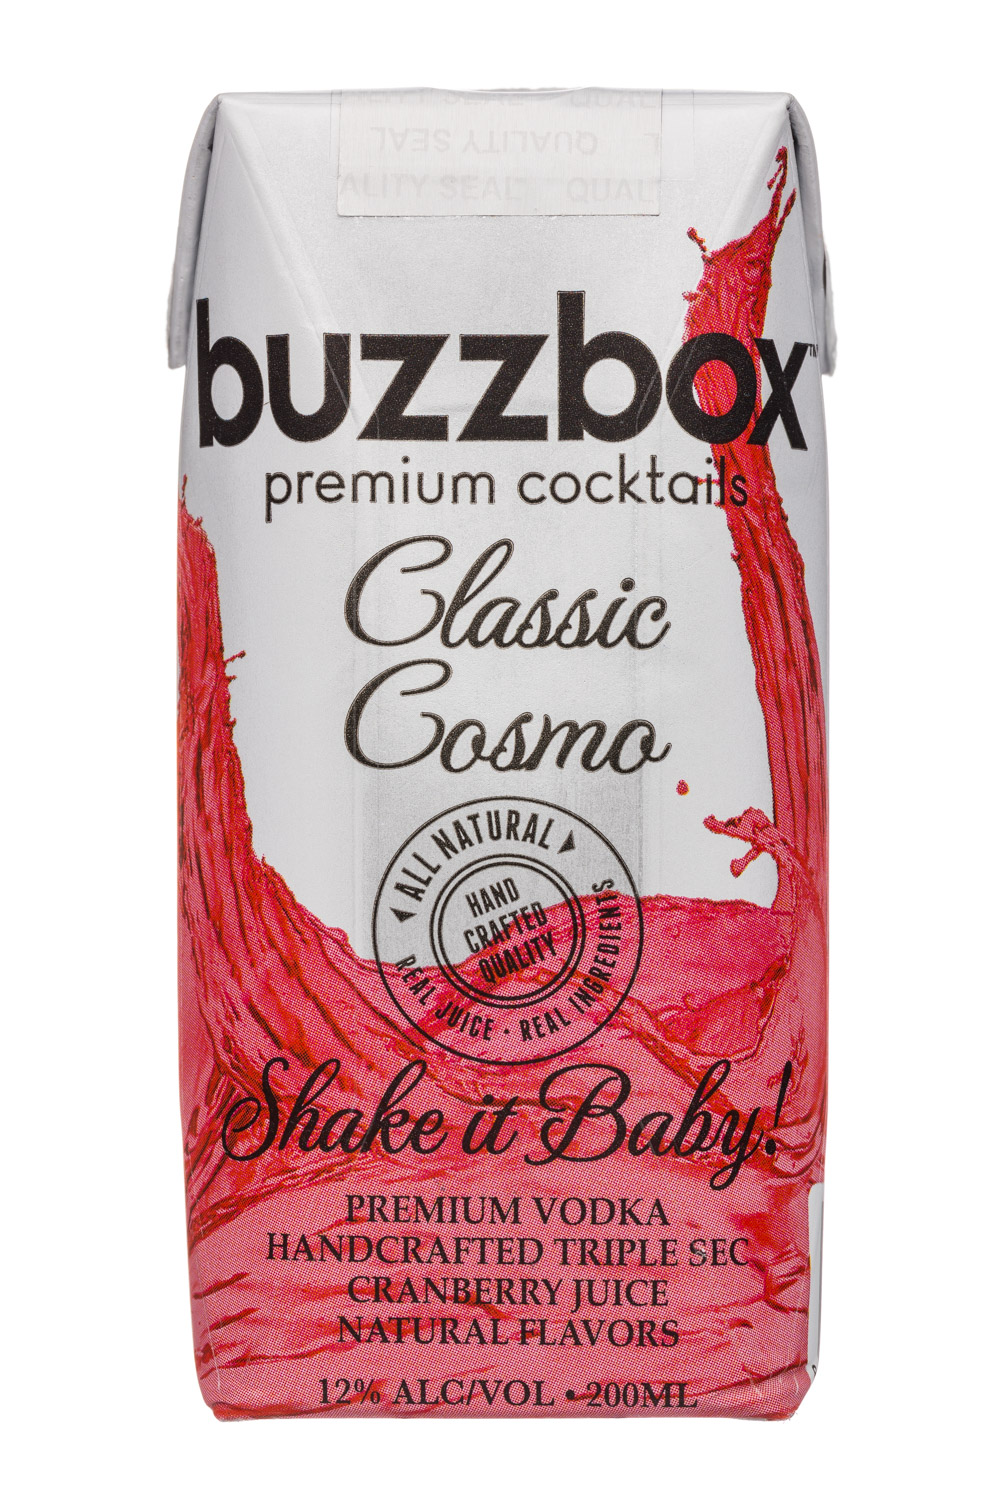 BuzzBox: Buzzbox-200ml-Cocktail-ClassicCosmo